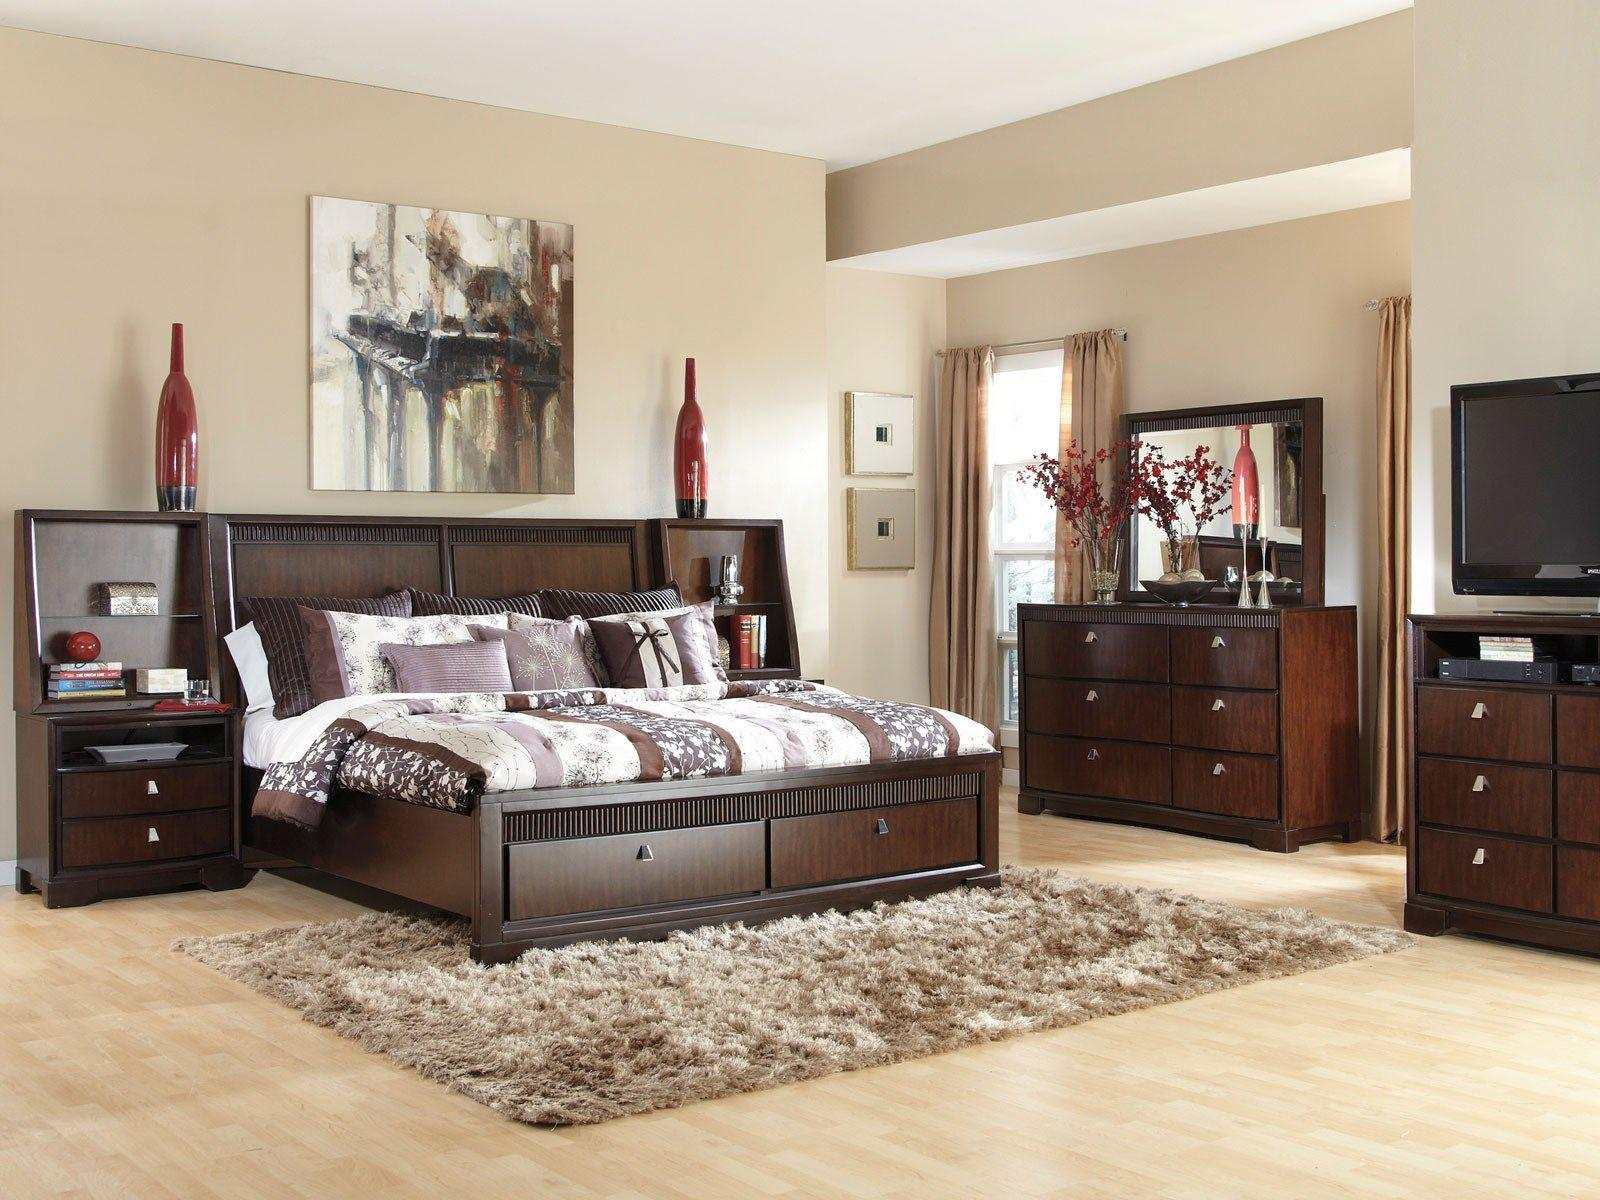 Image of: Modern King Bed Sets